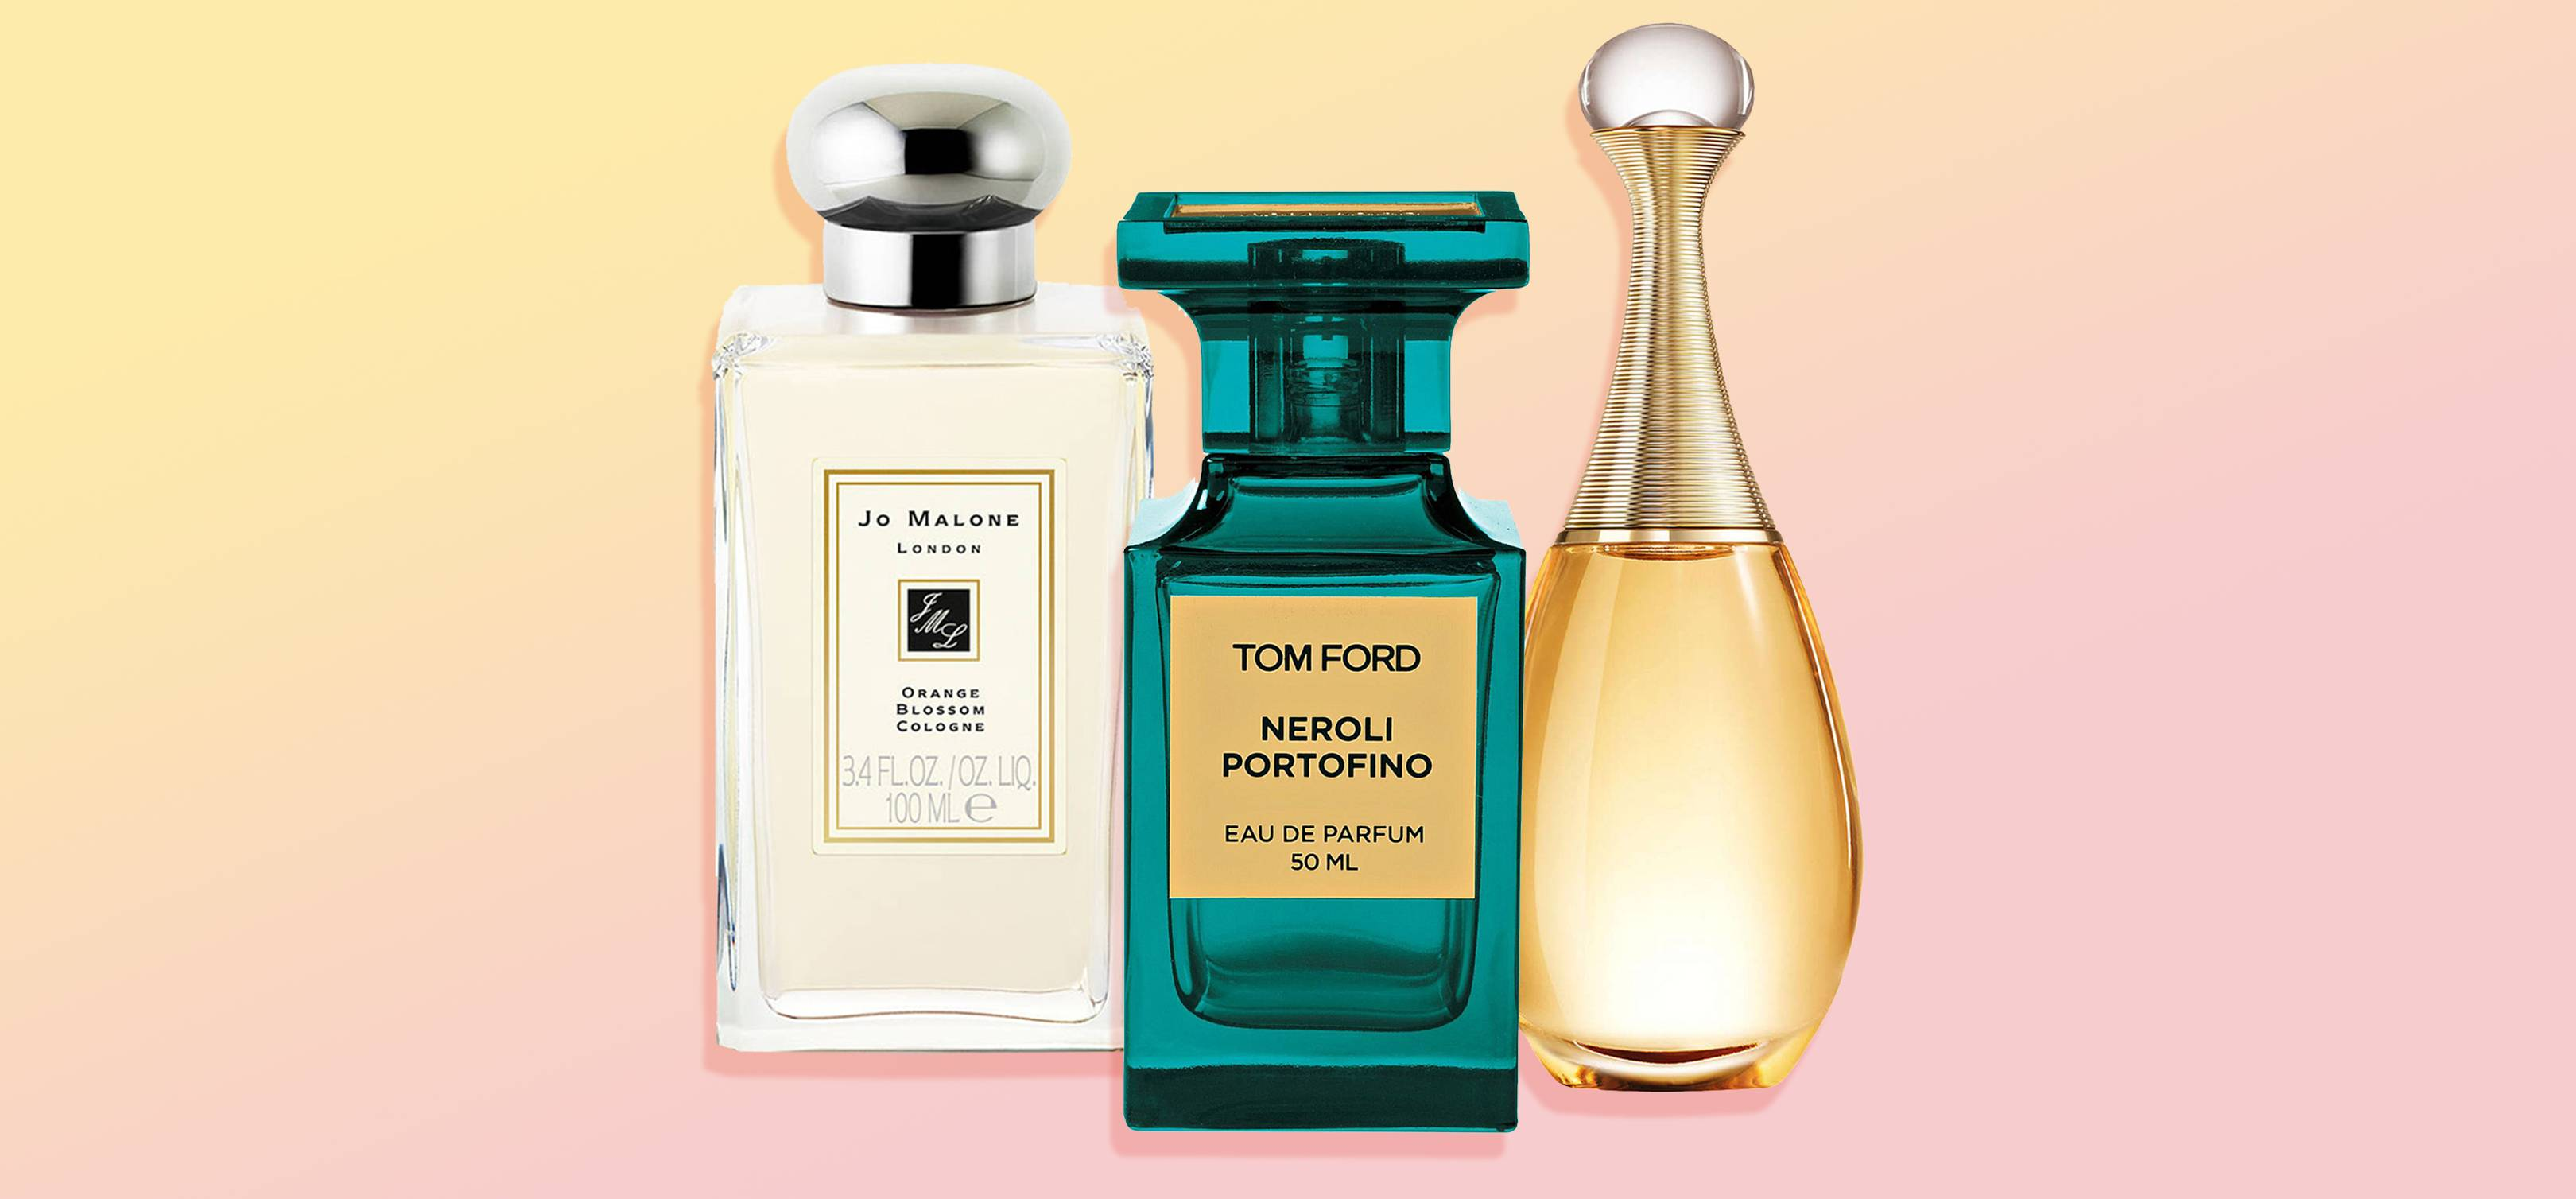 The Best Perfume For Women Bestselling Fragrances Glamour Uk